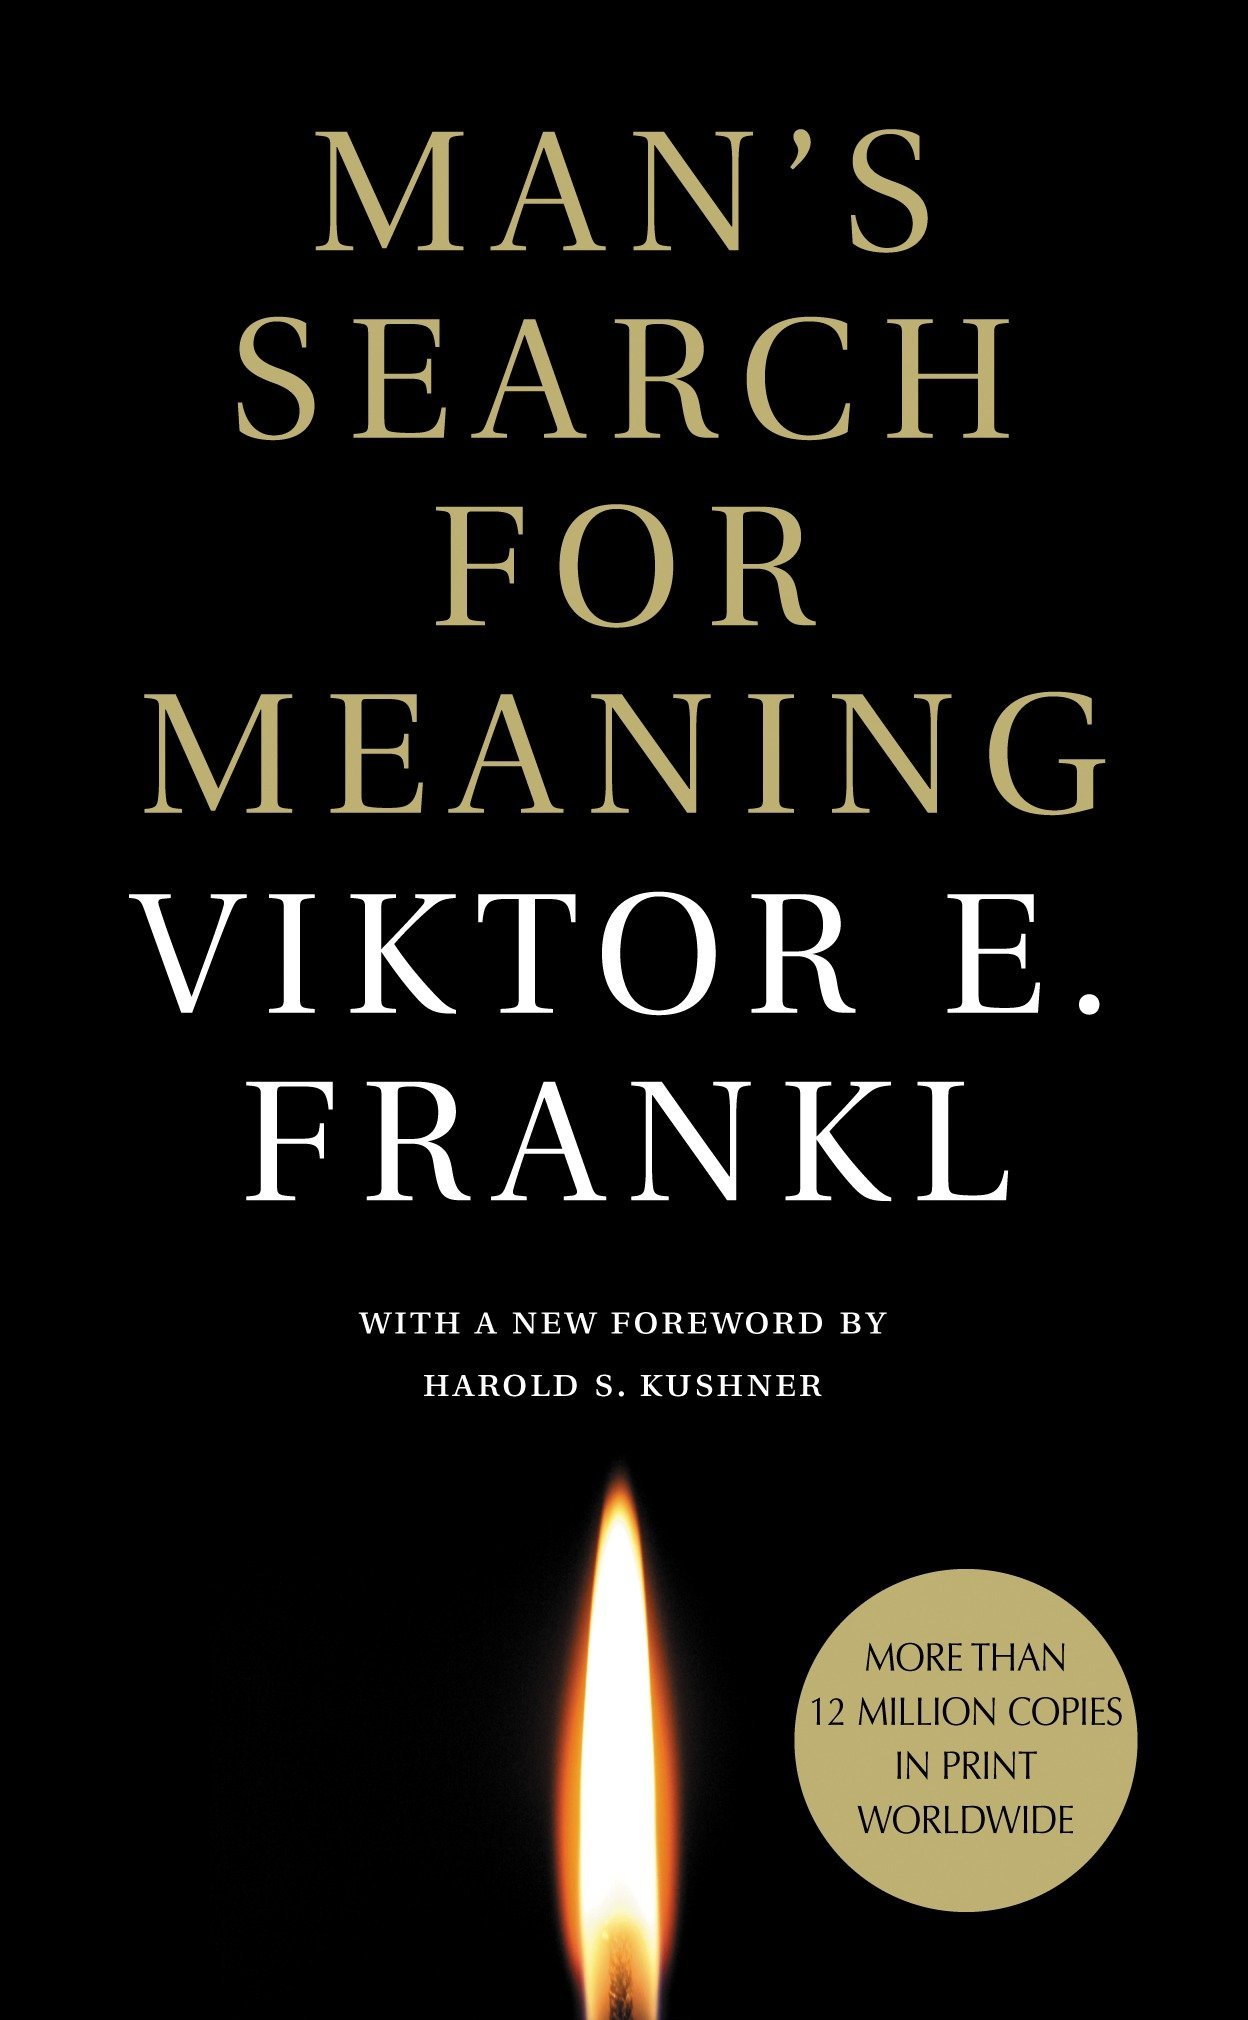 """A book cover of """"Man's Search for Meaning"""" by Viktor E. Frankl."""